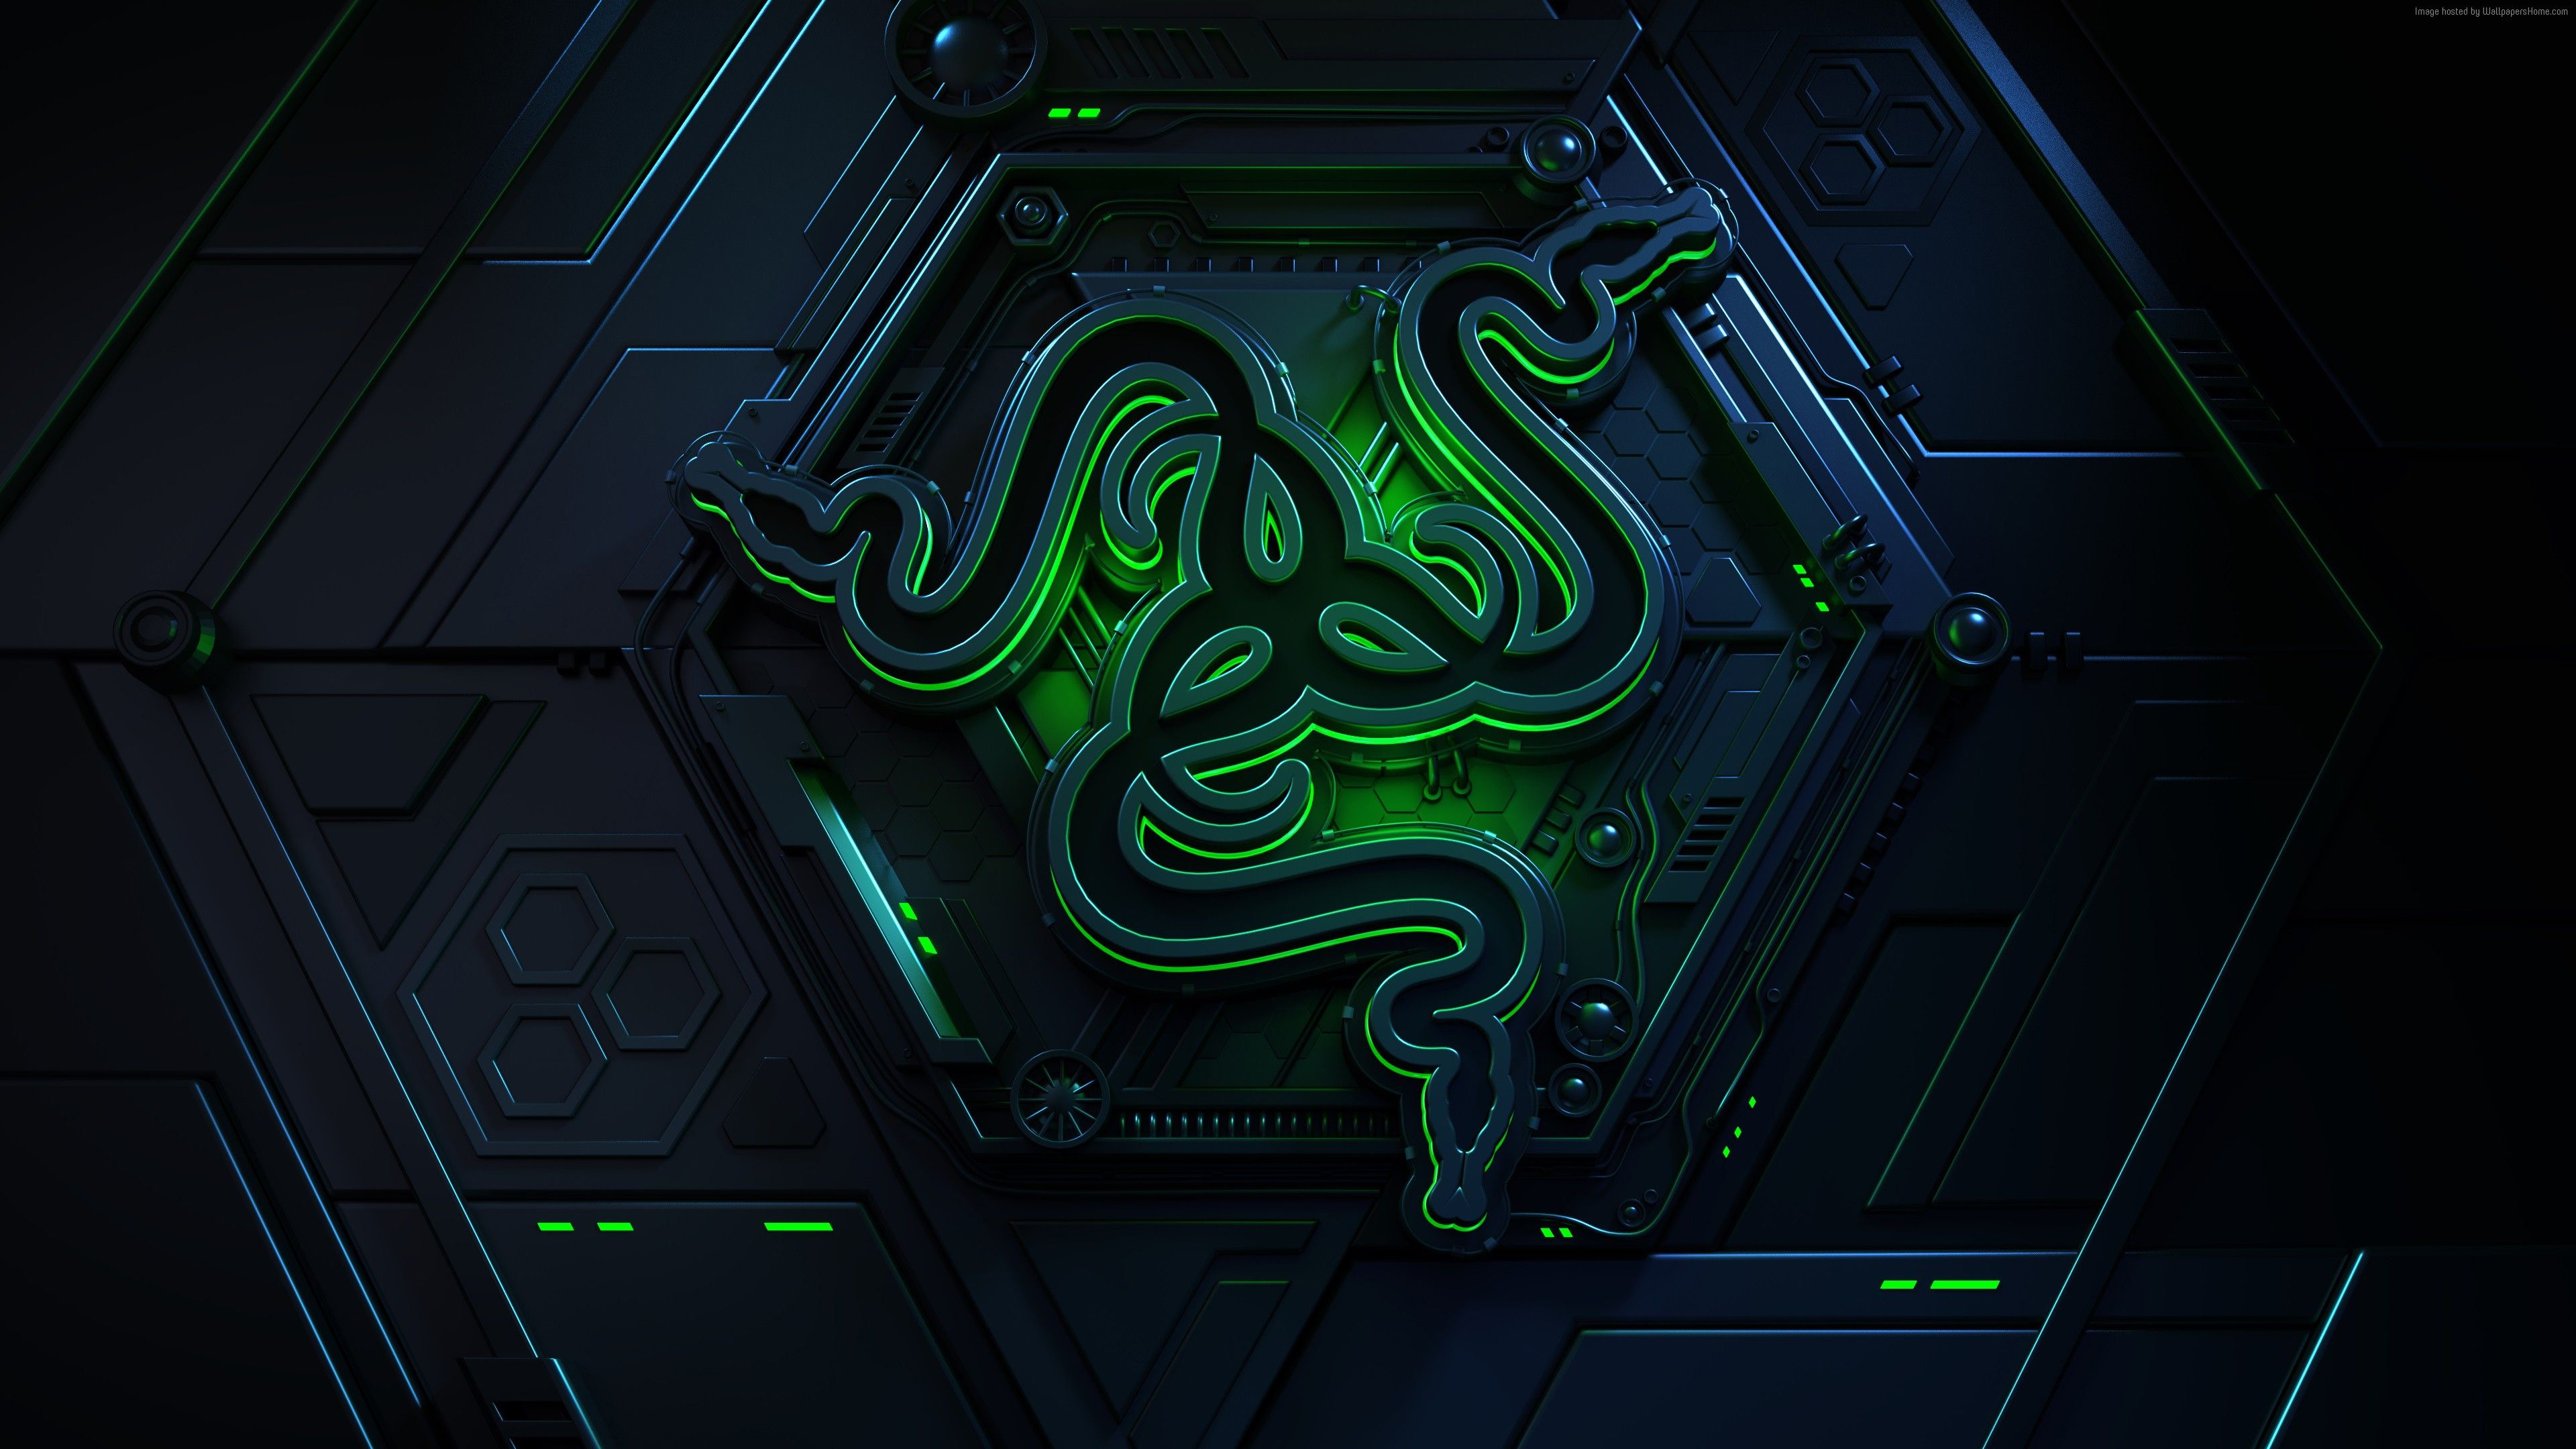 Wallpaper Razer Logo 4k Hi Tech Http Www Wallpaperback Net Hd Wallpapers Wallpaper Razer Logo 4k Technology Wallpaper Neon Wallpaper Black Phone Wallpaper